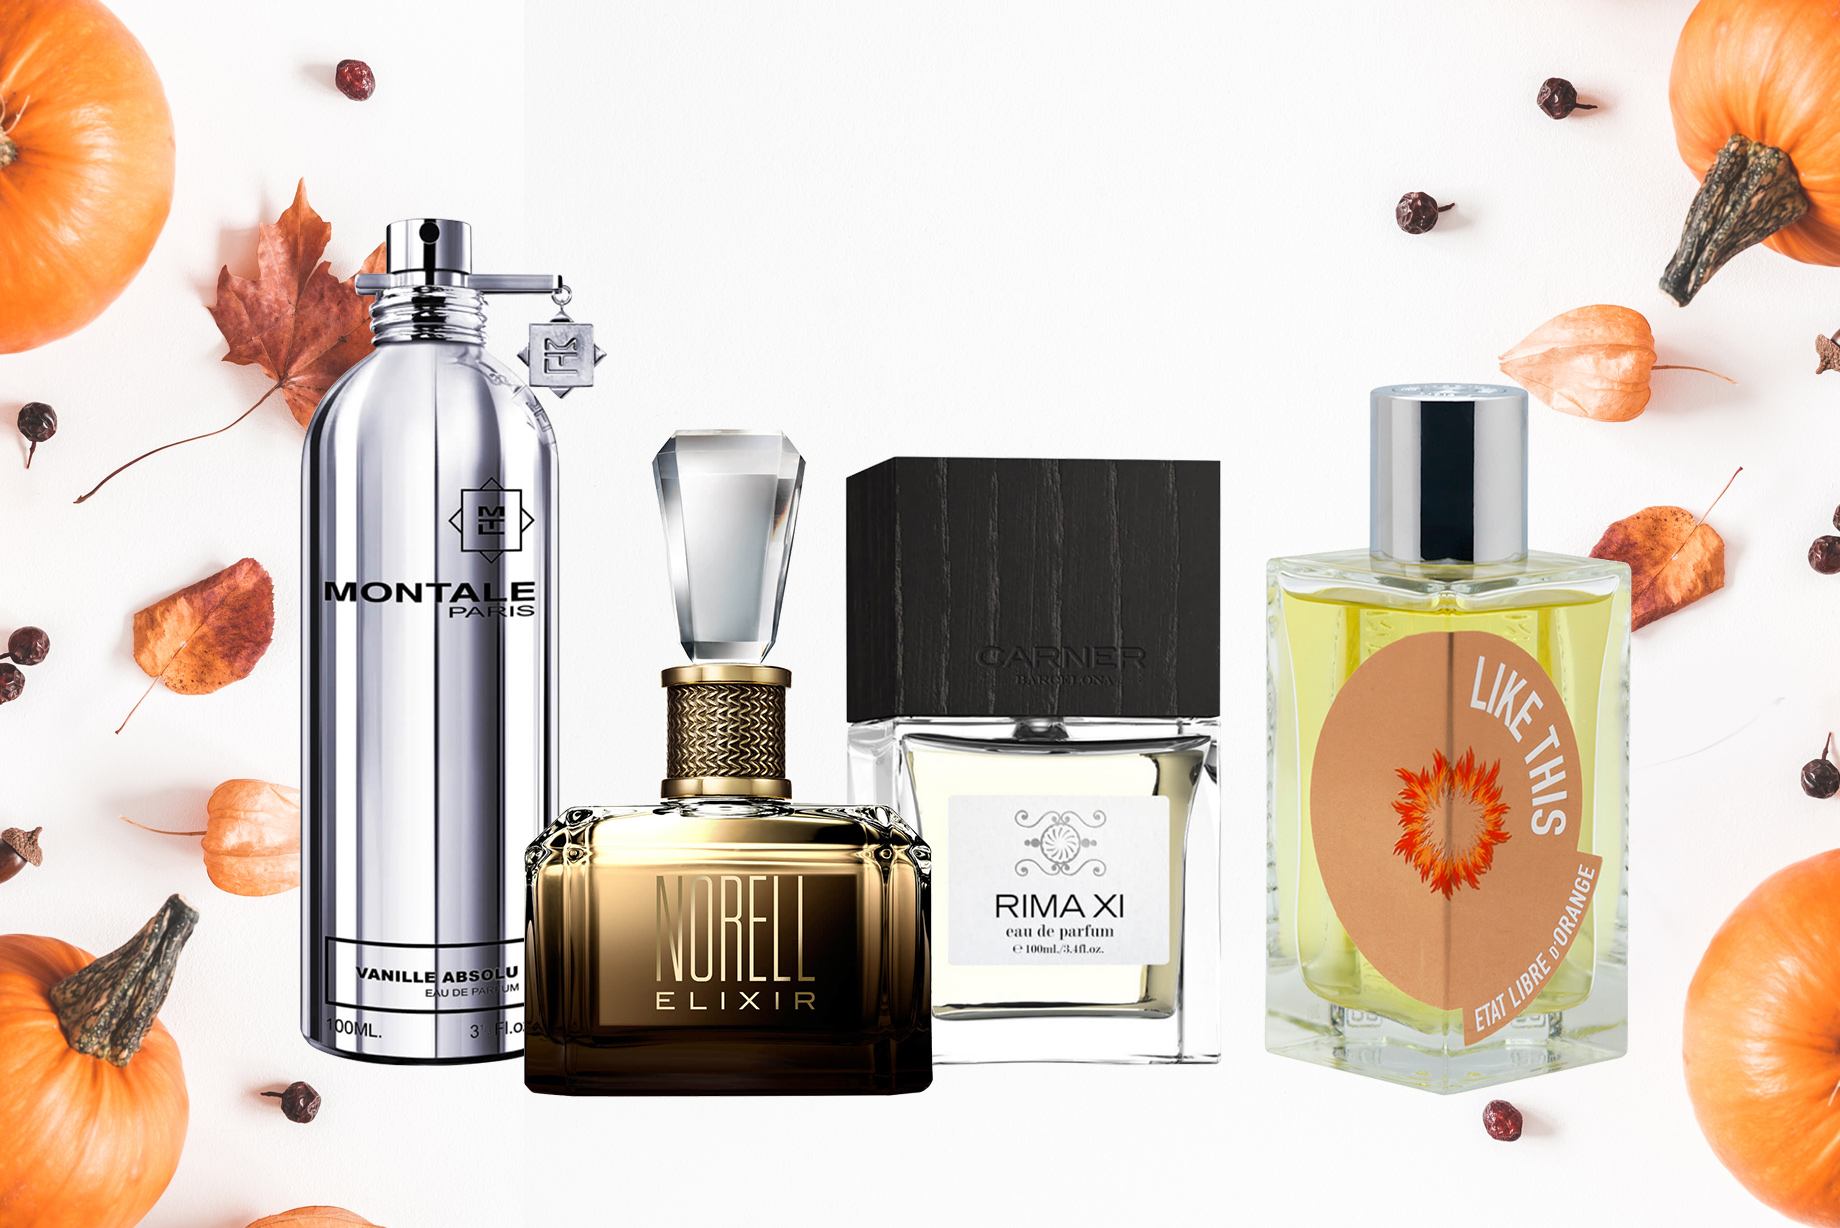 Love Pumpkin Spice Lattes? These Are The Fragrances For You